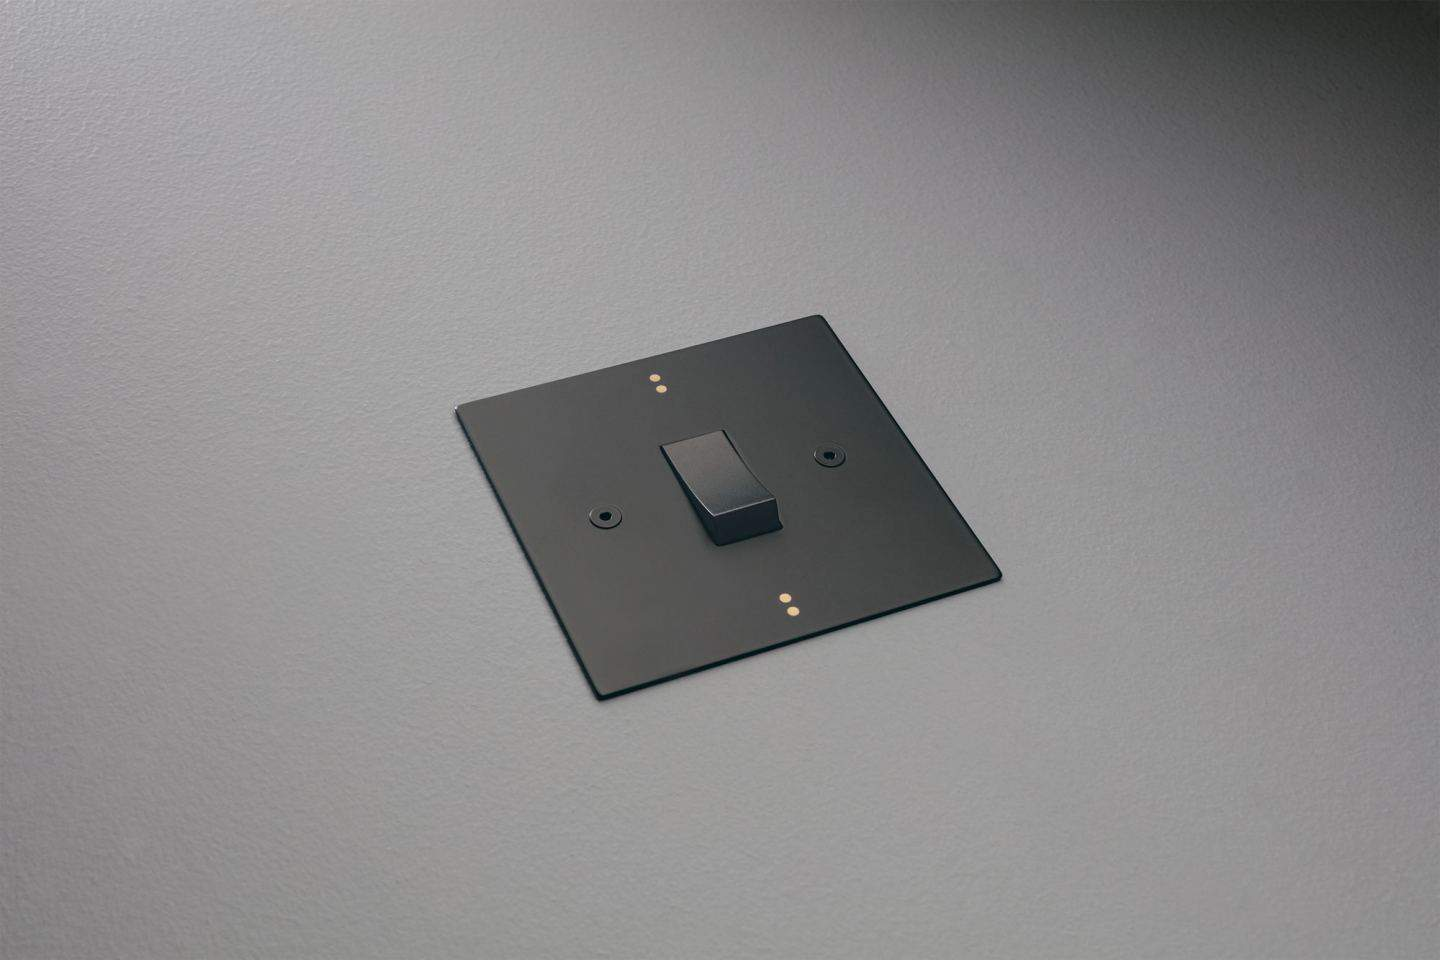 Designer light switches by Kelly Hoppen for Focus SB. Dot is a black light switch featuring two small metallic dots at the top and bottom of the plate.